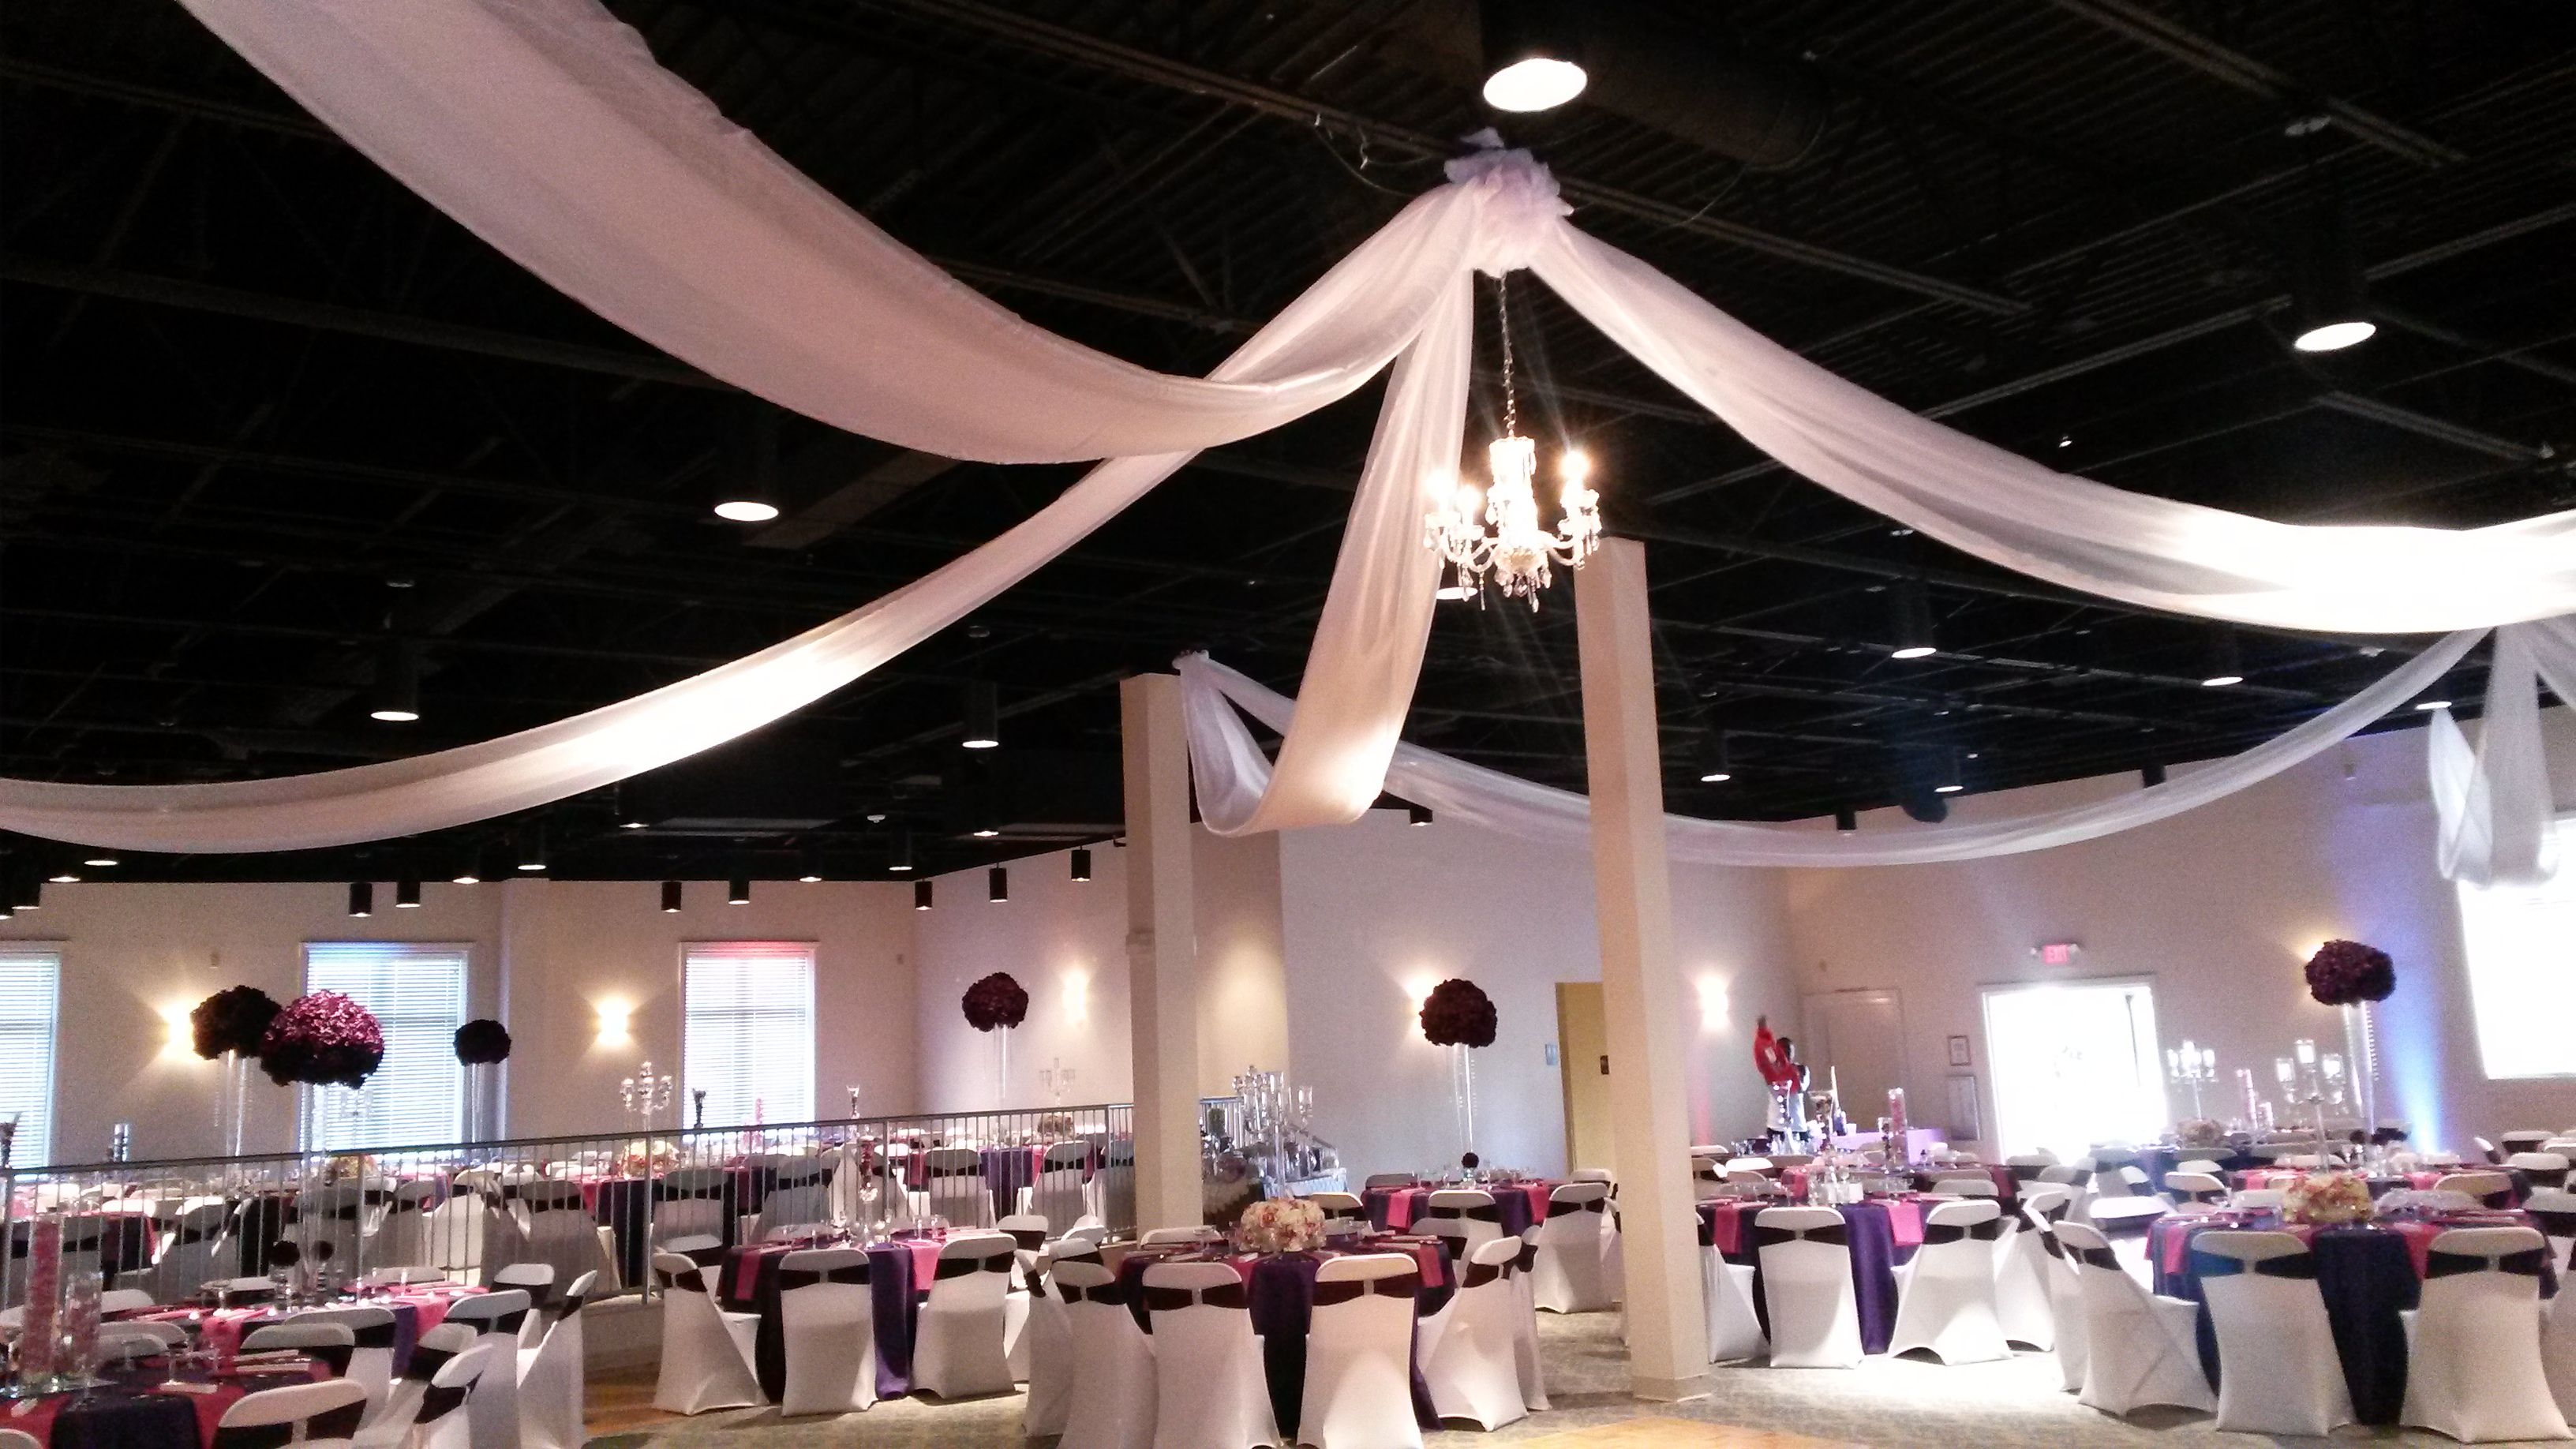 Simple ceiling with elegant table settings. - May 16th, 2015 - Wedding Reception